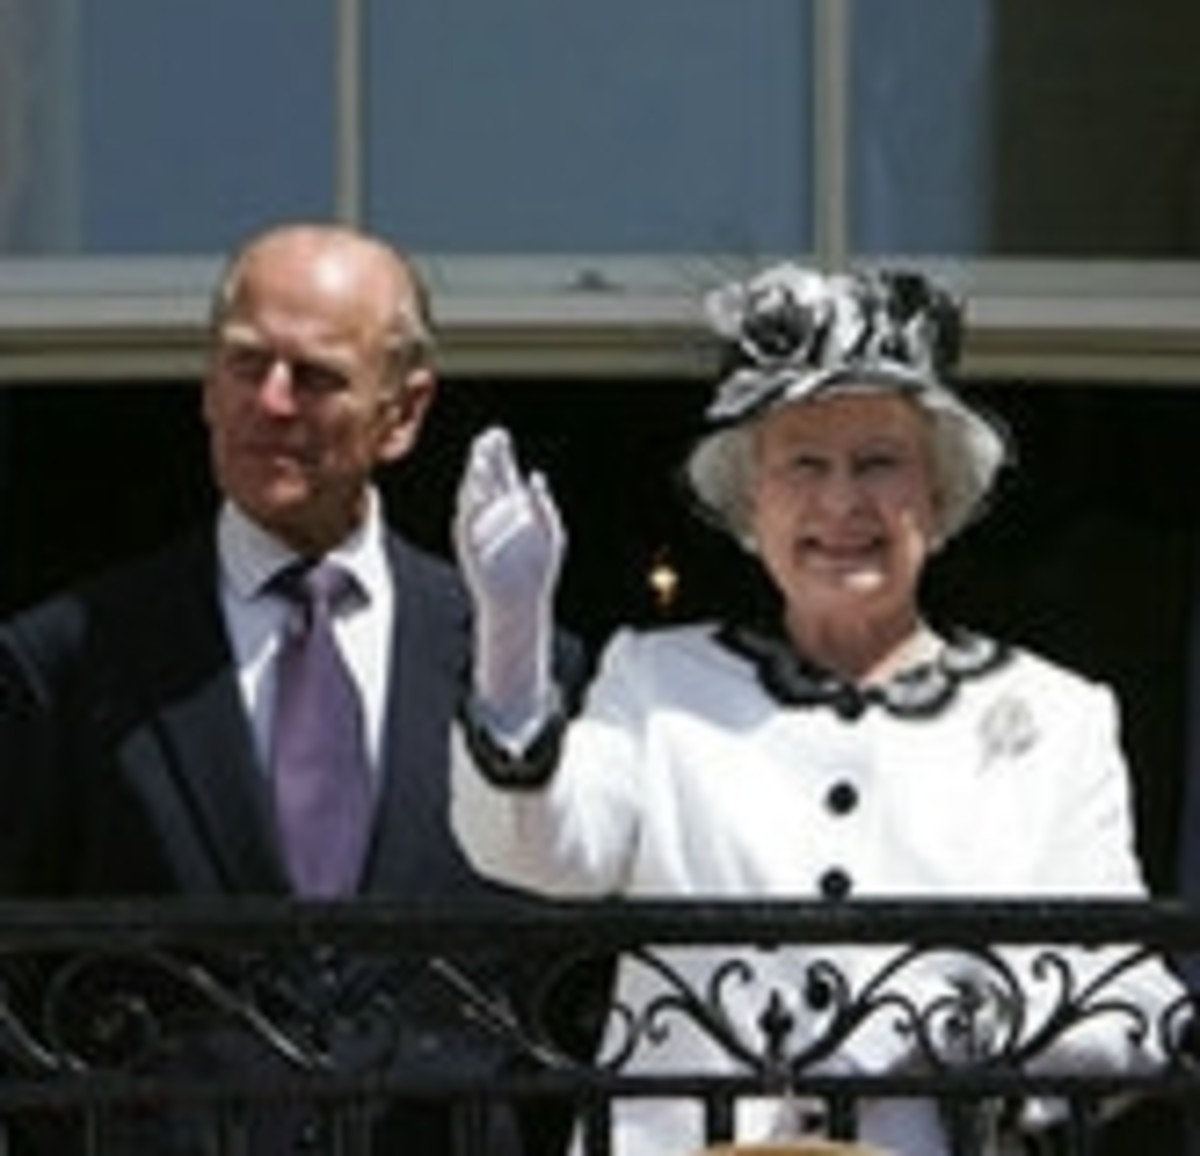 Queen Eliabeth and the Duke of Edinburgh